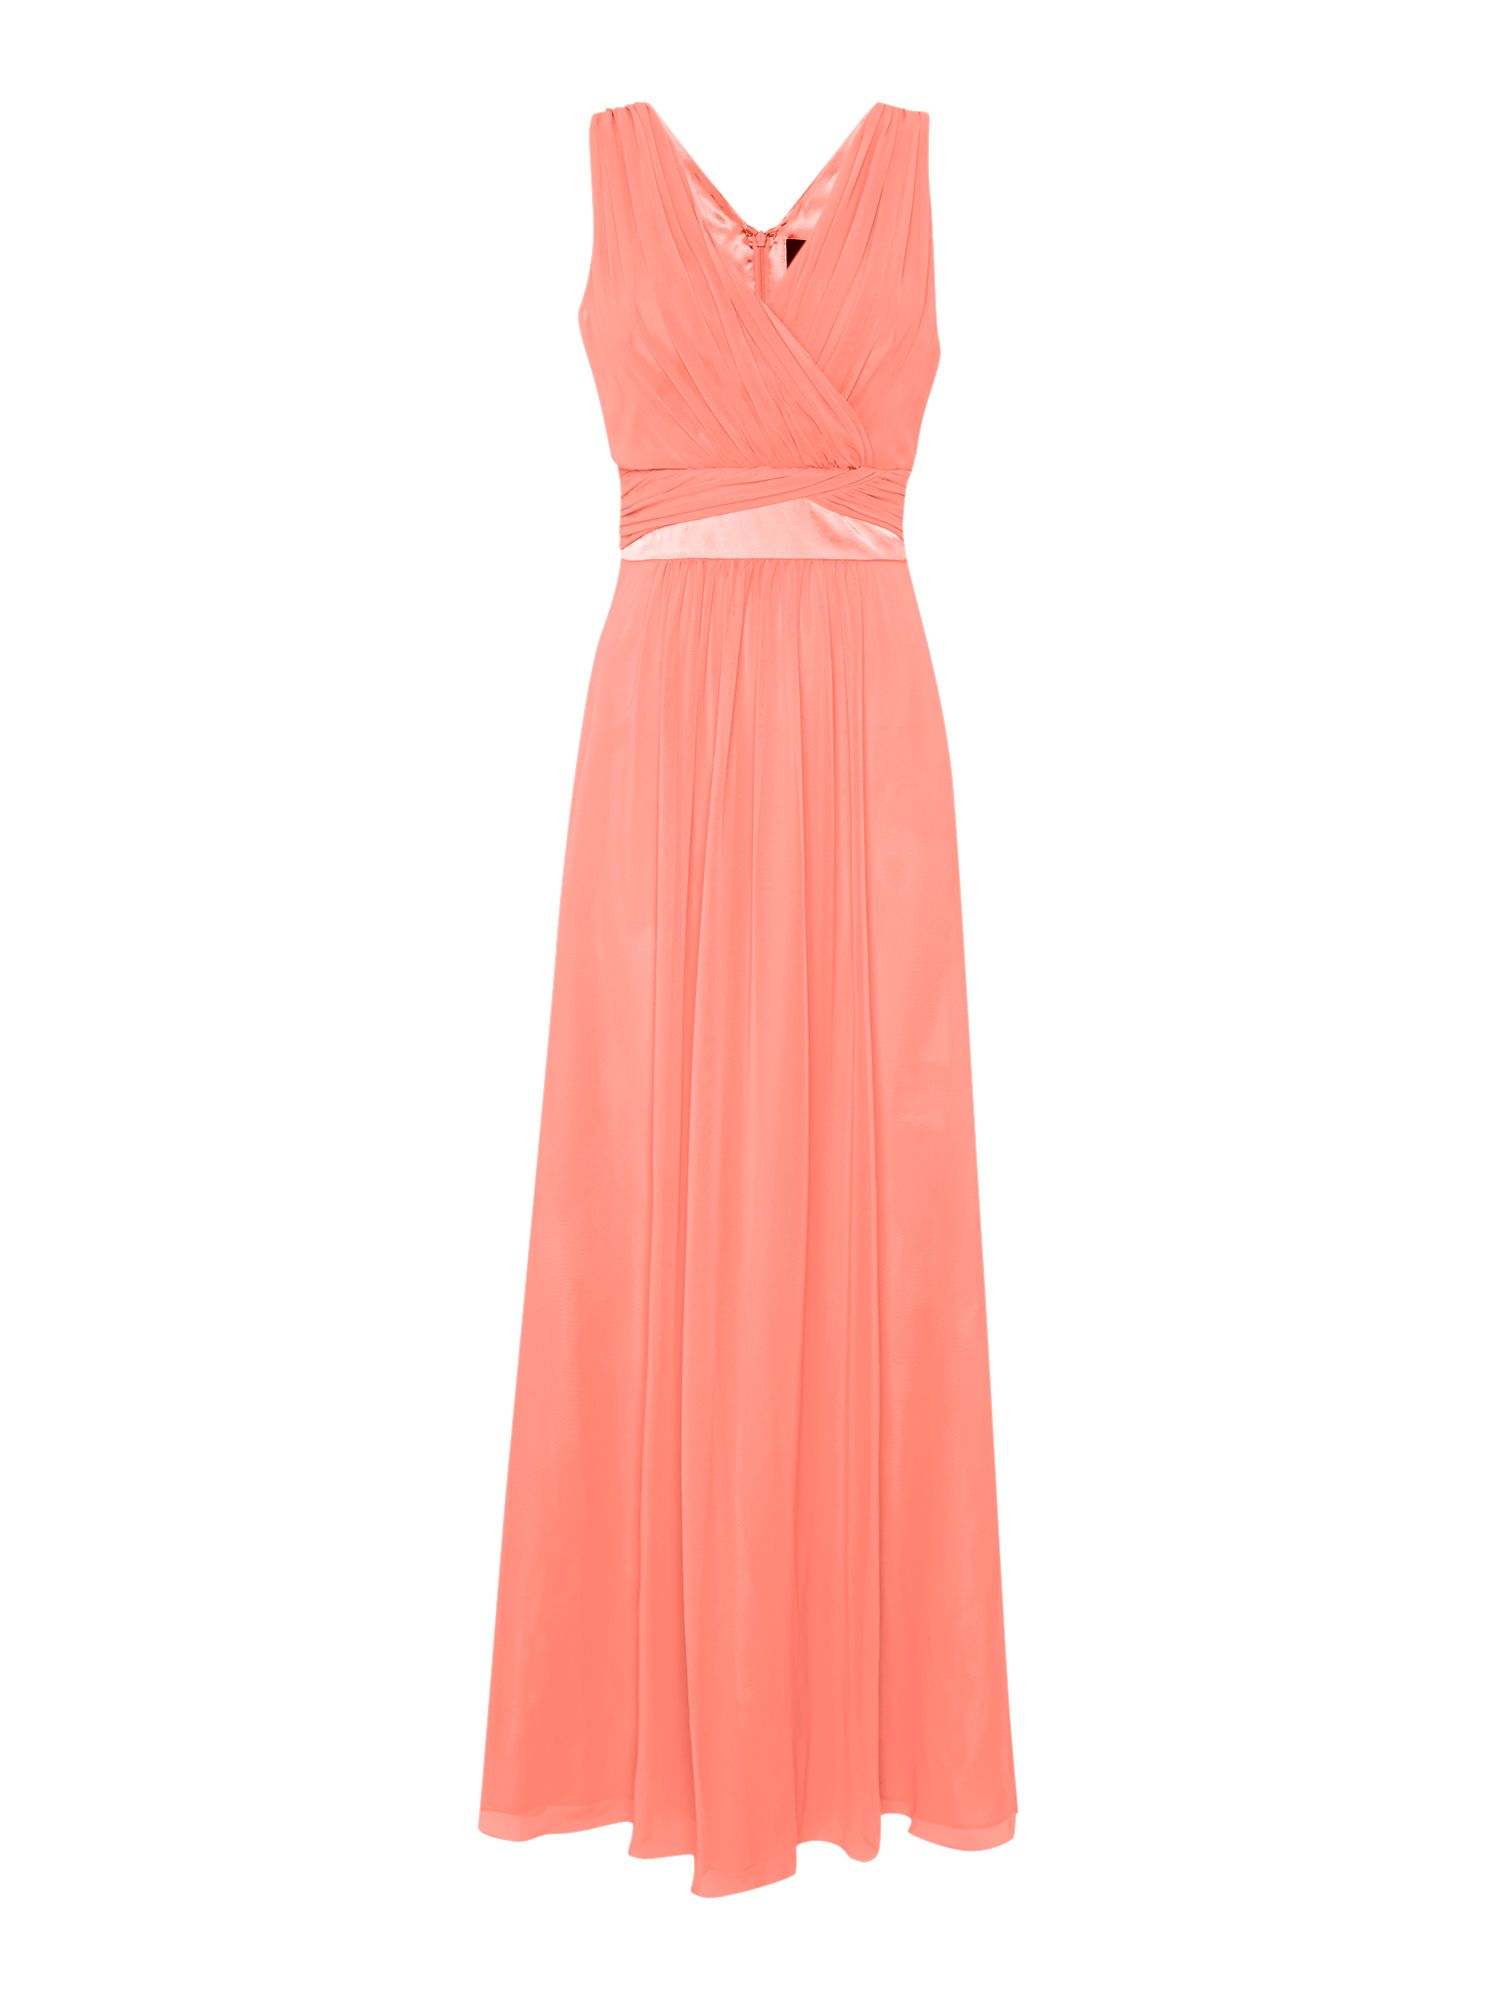 Mother of the bride maxi dresses mother of the groom for Petite maxi dresses for beach wedding